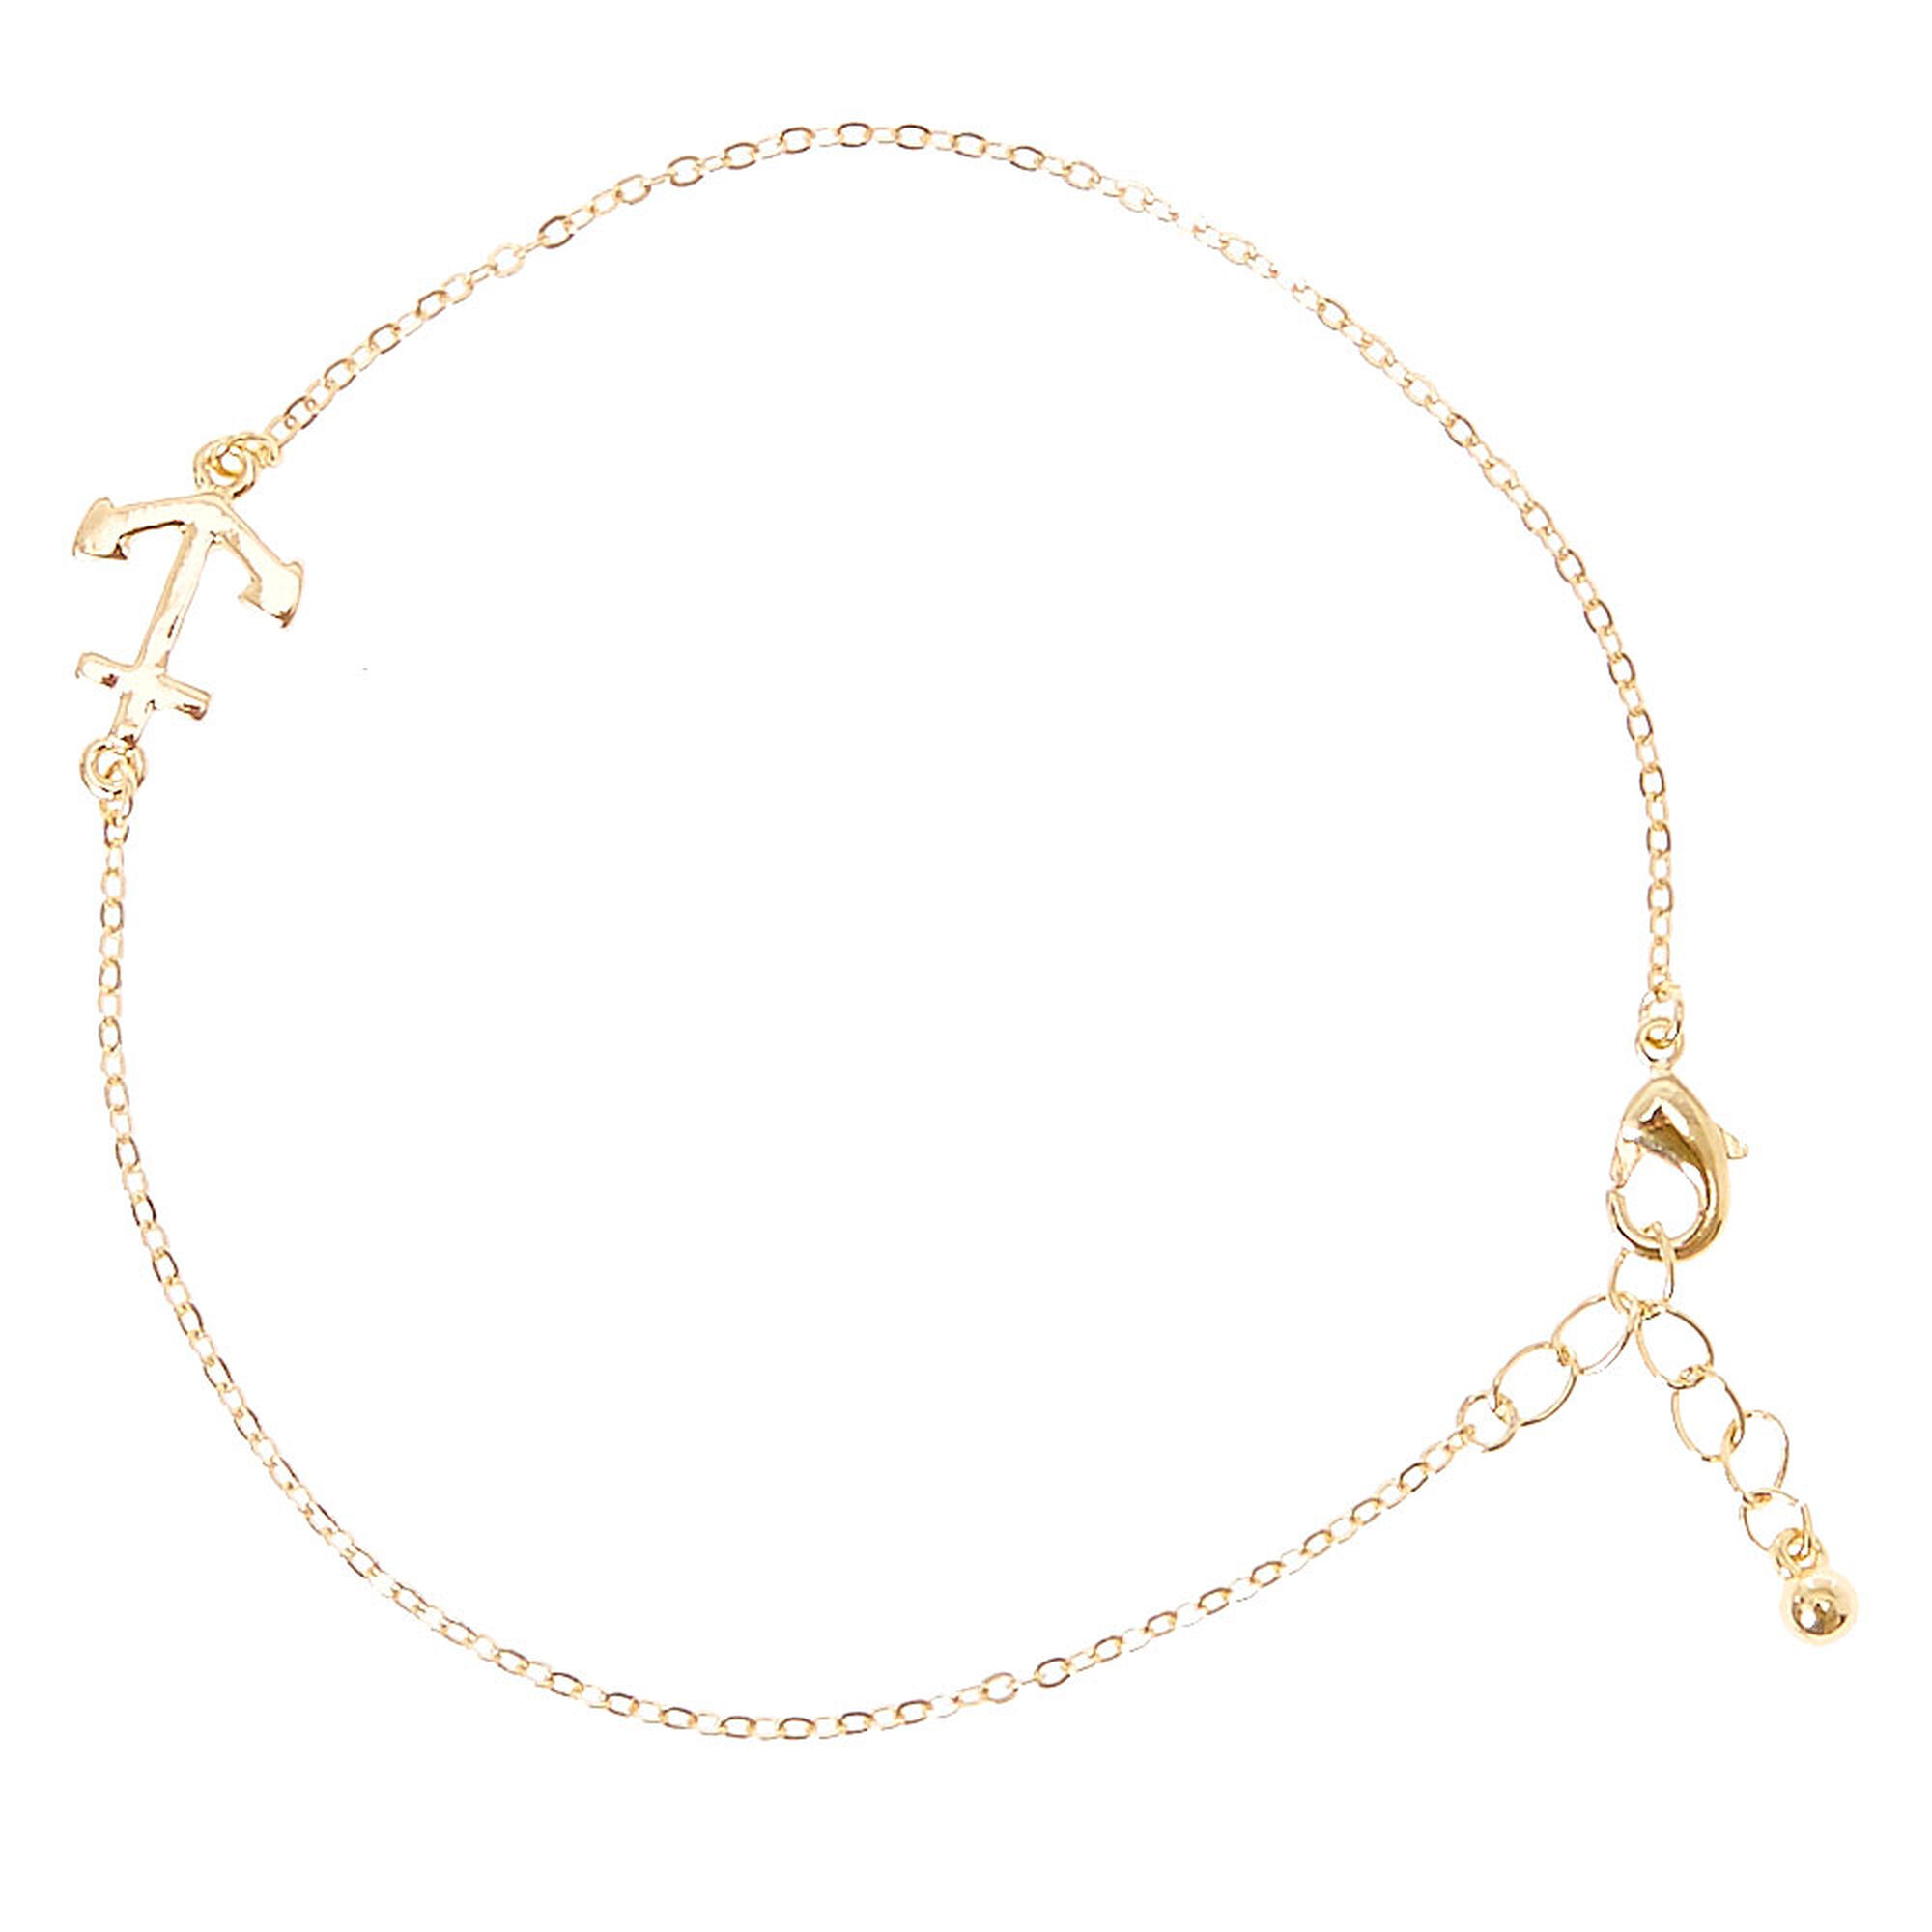 tone us anchor icing bracelet simple gold anklet bracelets ankle